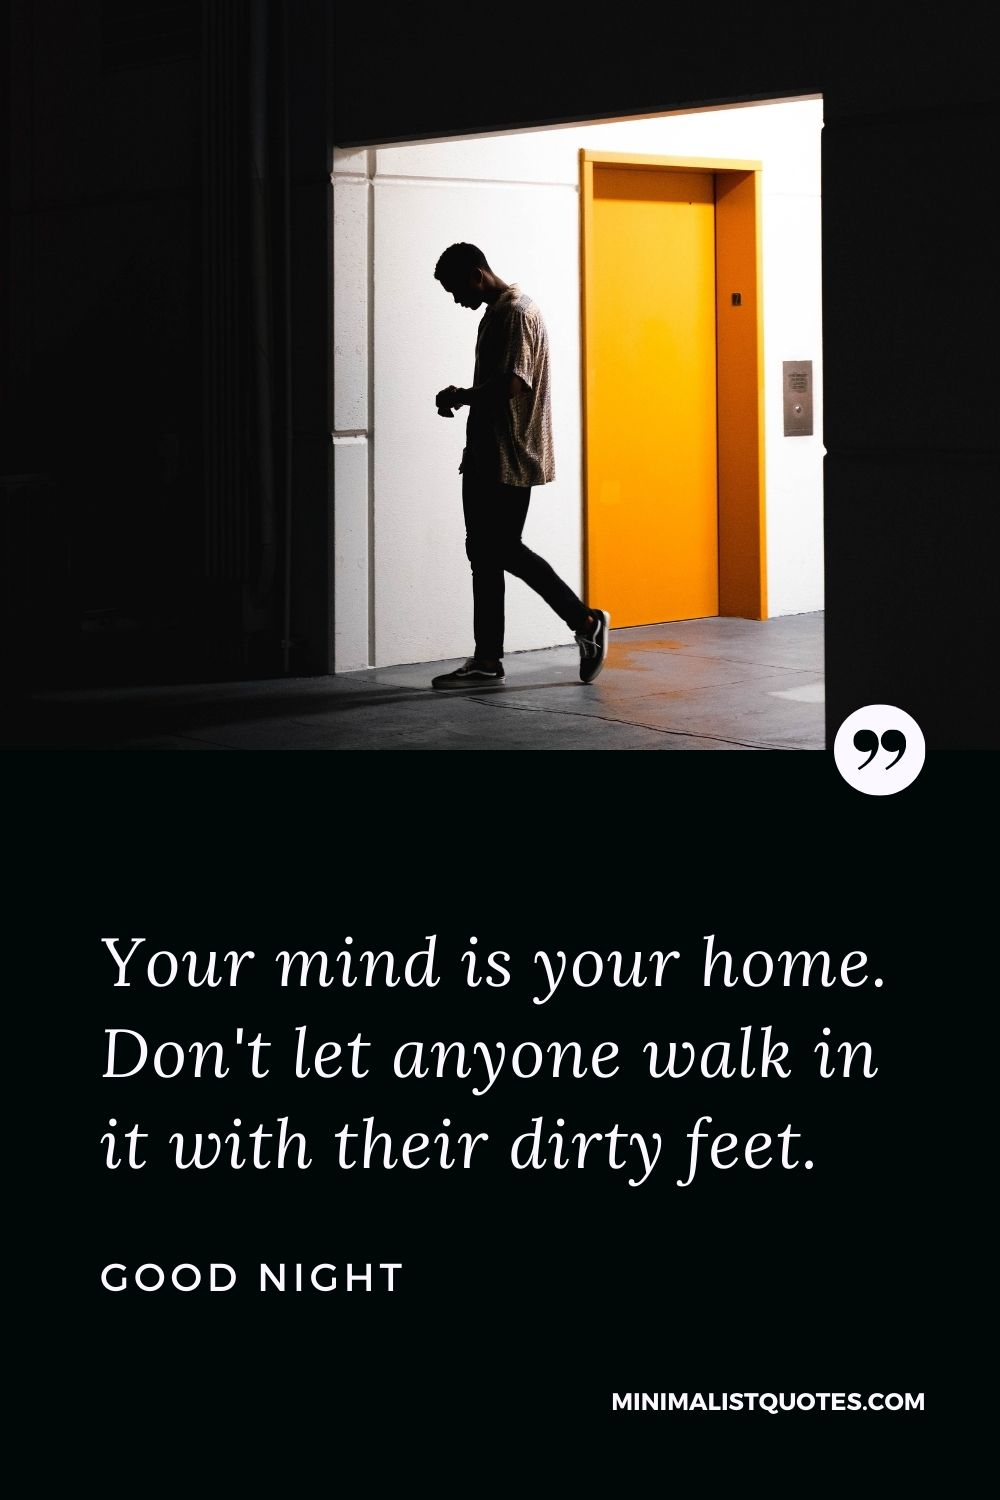 Good Night Wishes - Your mind is your home. Don't let anyone walk in it with their dirty feet.